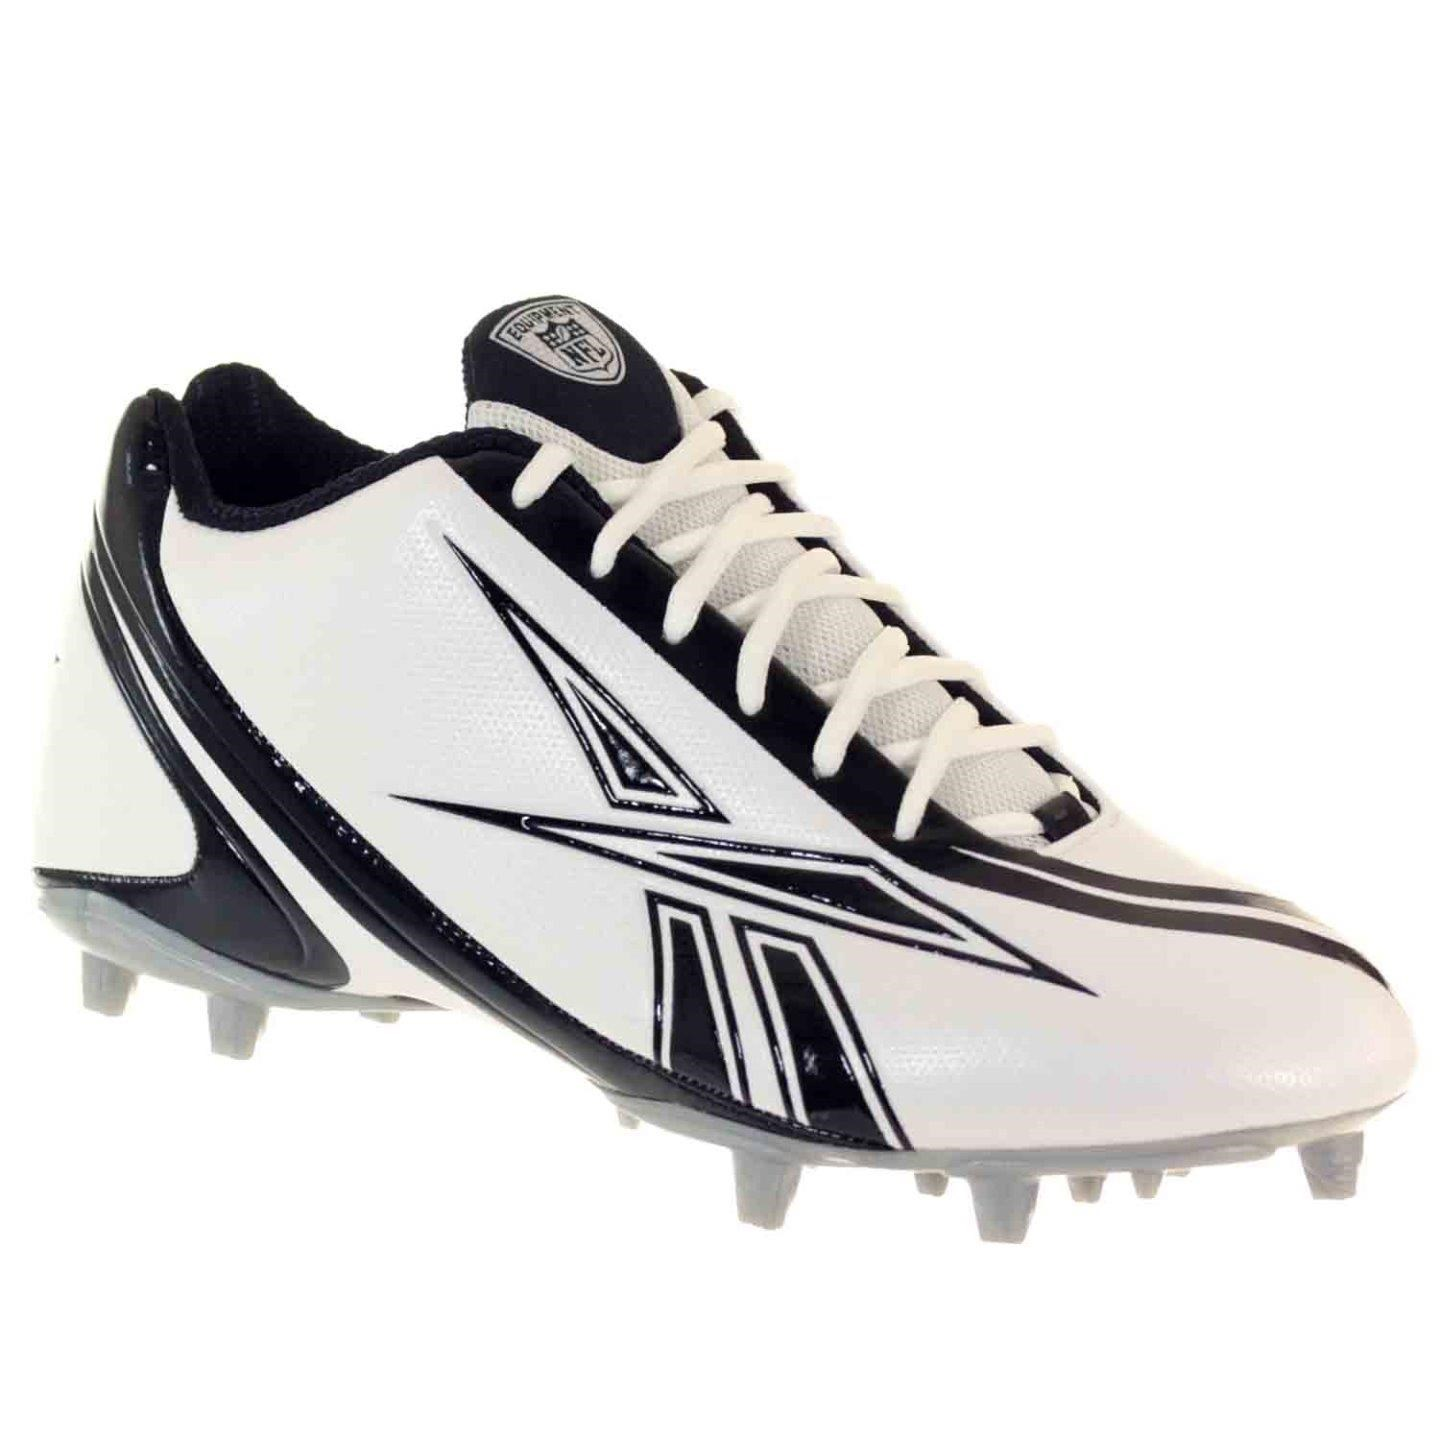 REEBOK PRO BURNER SPEED 5/8 M3 MENS FOOTBALL CLEATS WHITE BLACK 14